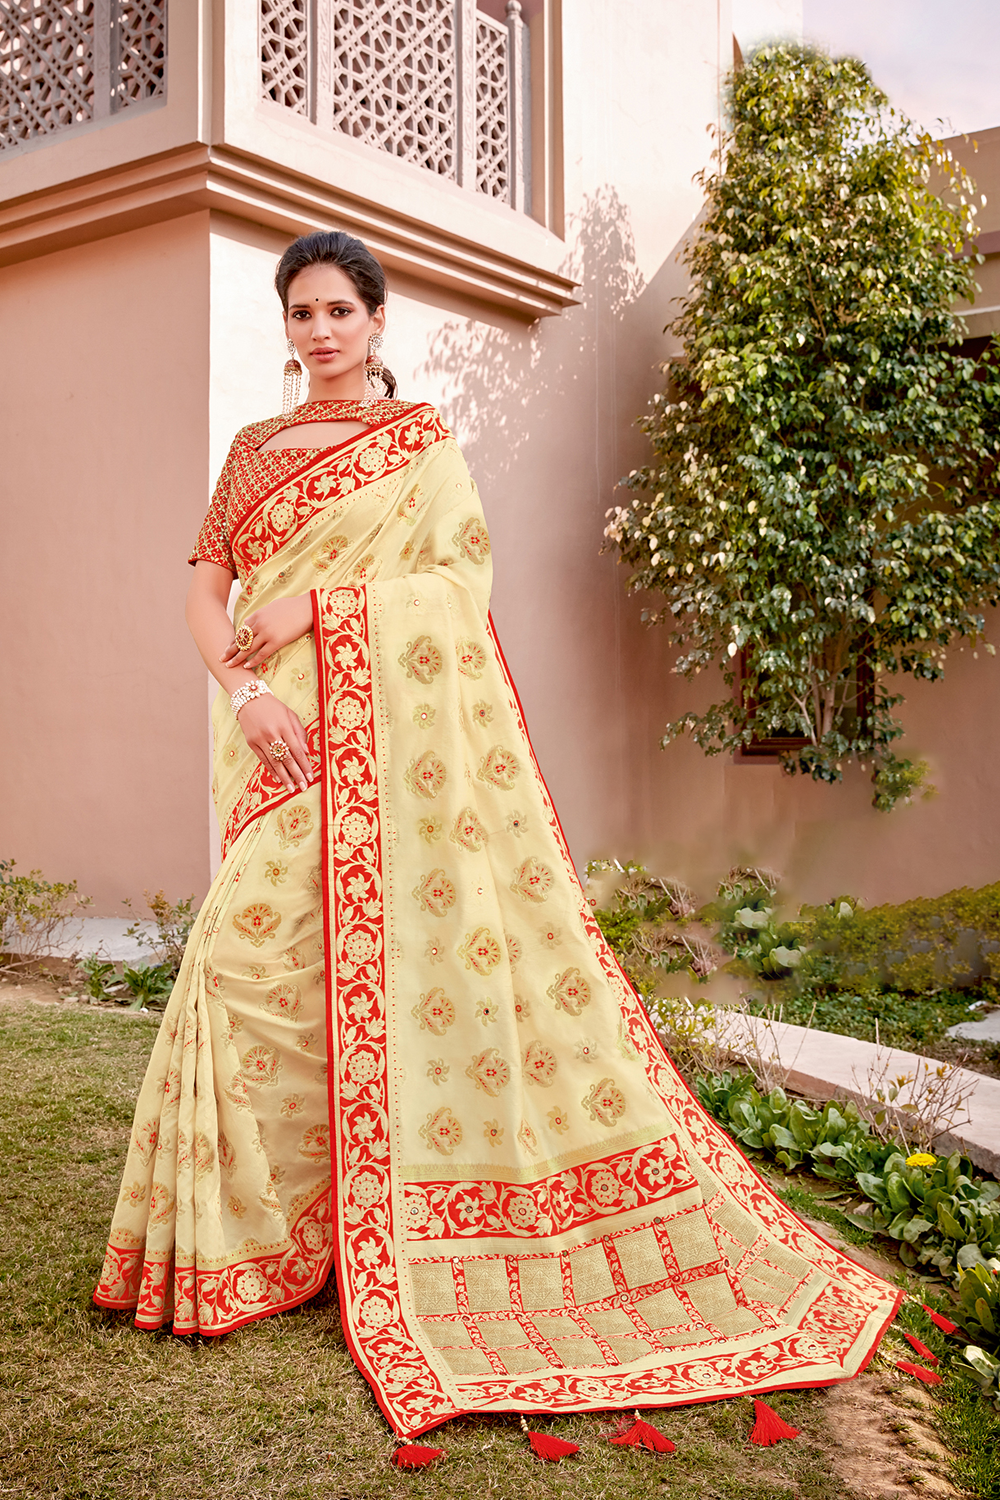 Red and cream combination   adorned in intricately floral weave and zari embroidery